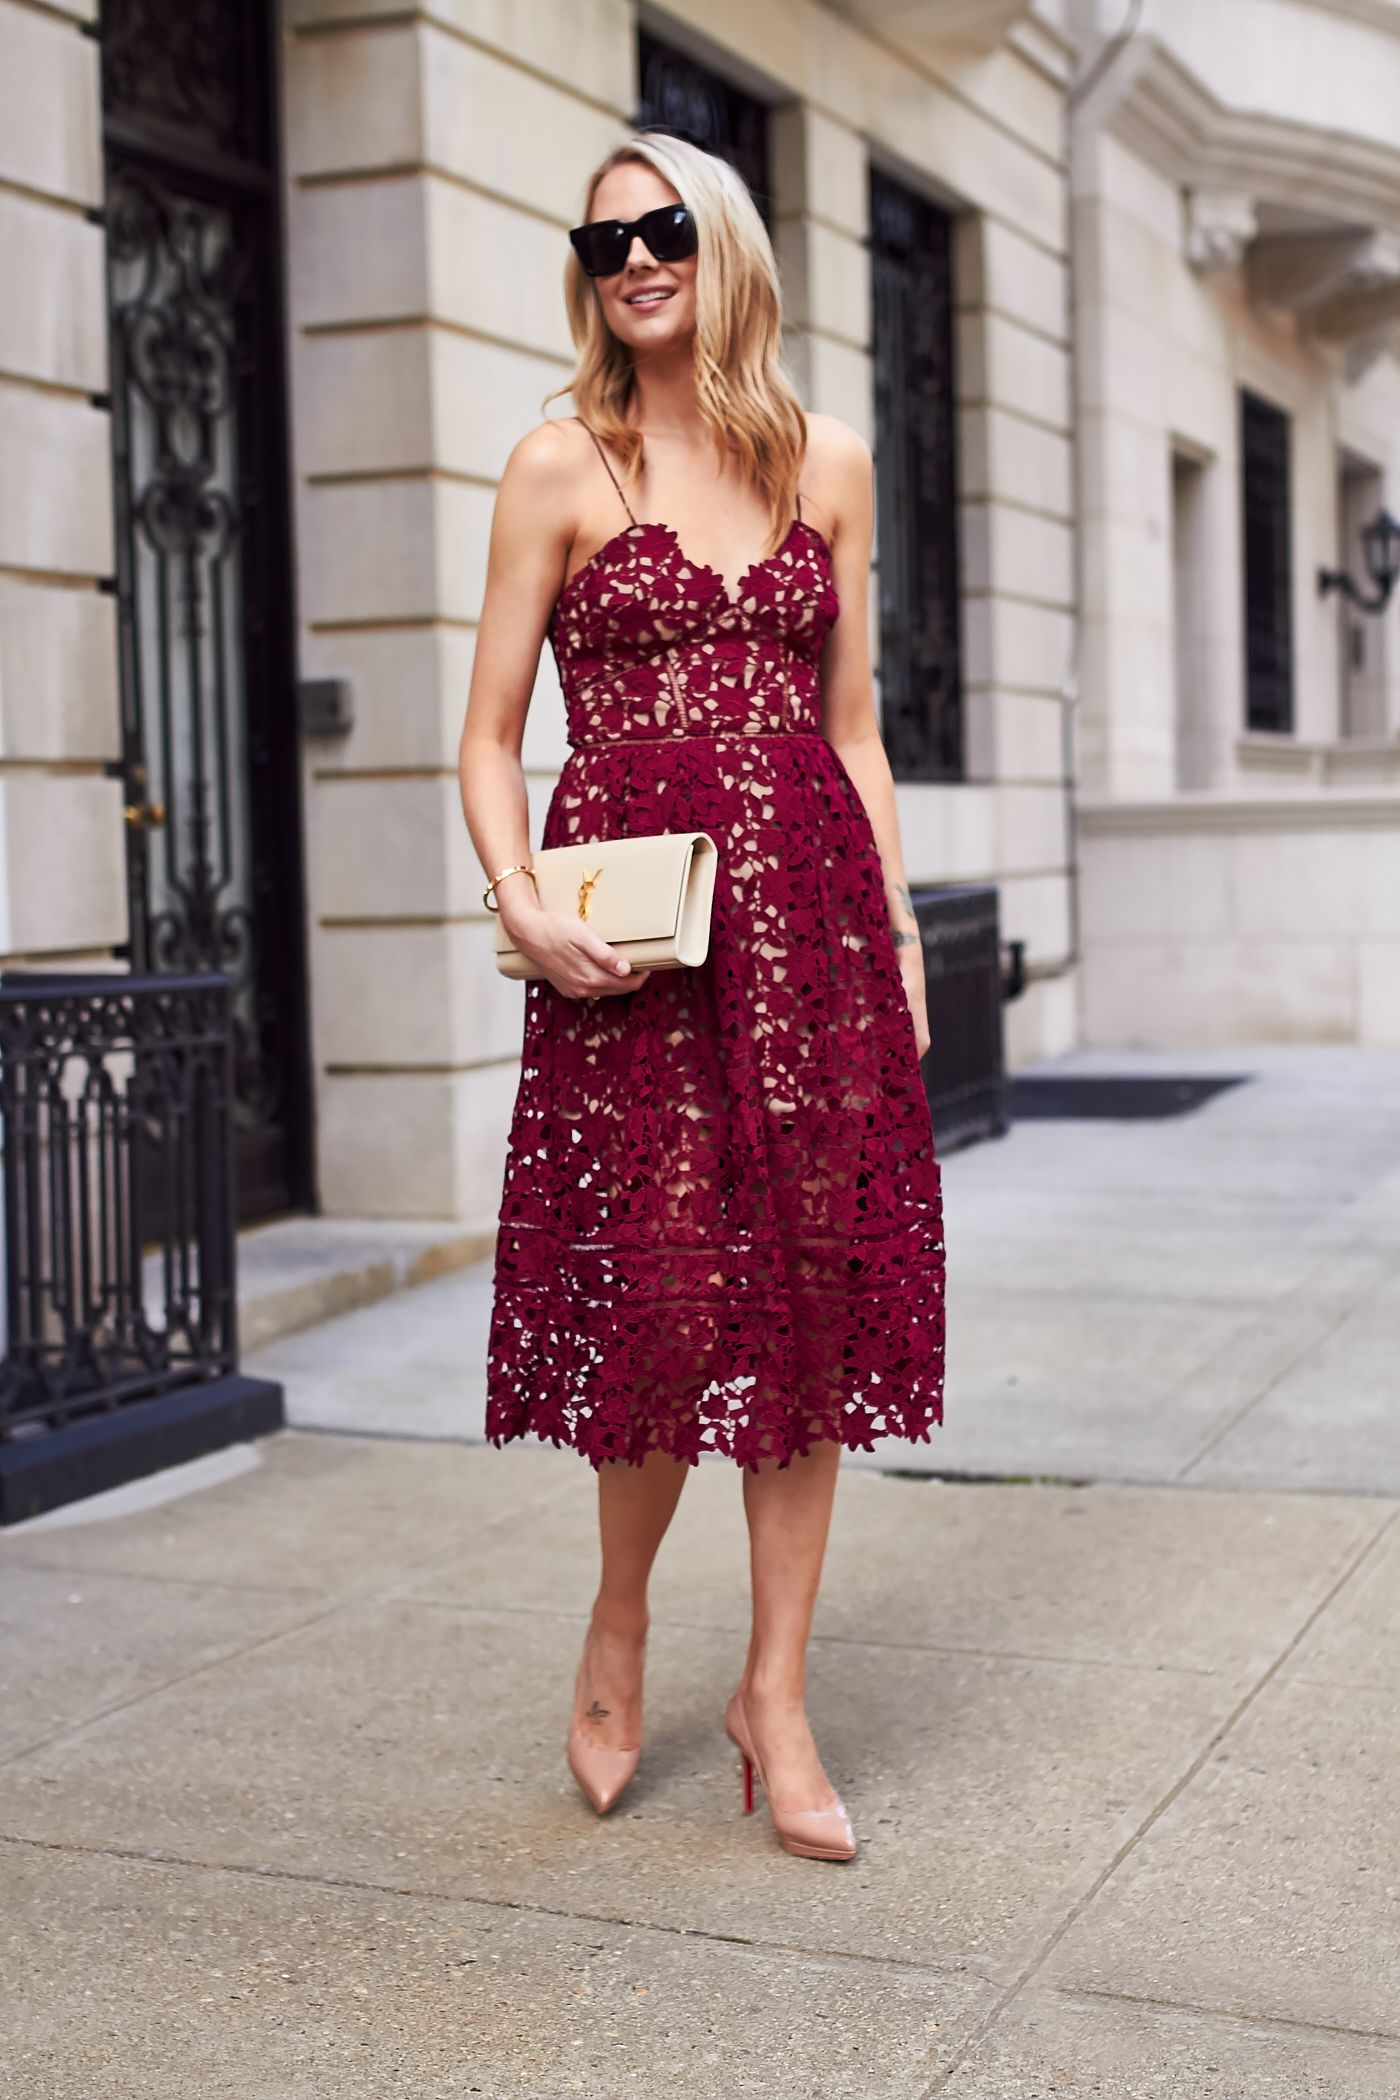 As you may know, I try to keep my selections at a reasonable spending-level because it's my belief that great fashion doesn't have to break the bank if you don't let it. However, every once in a while, a somewhat …